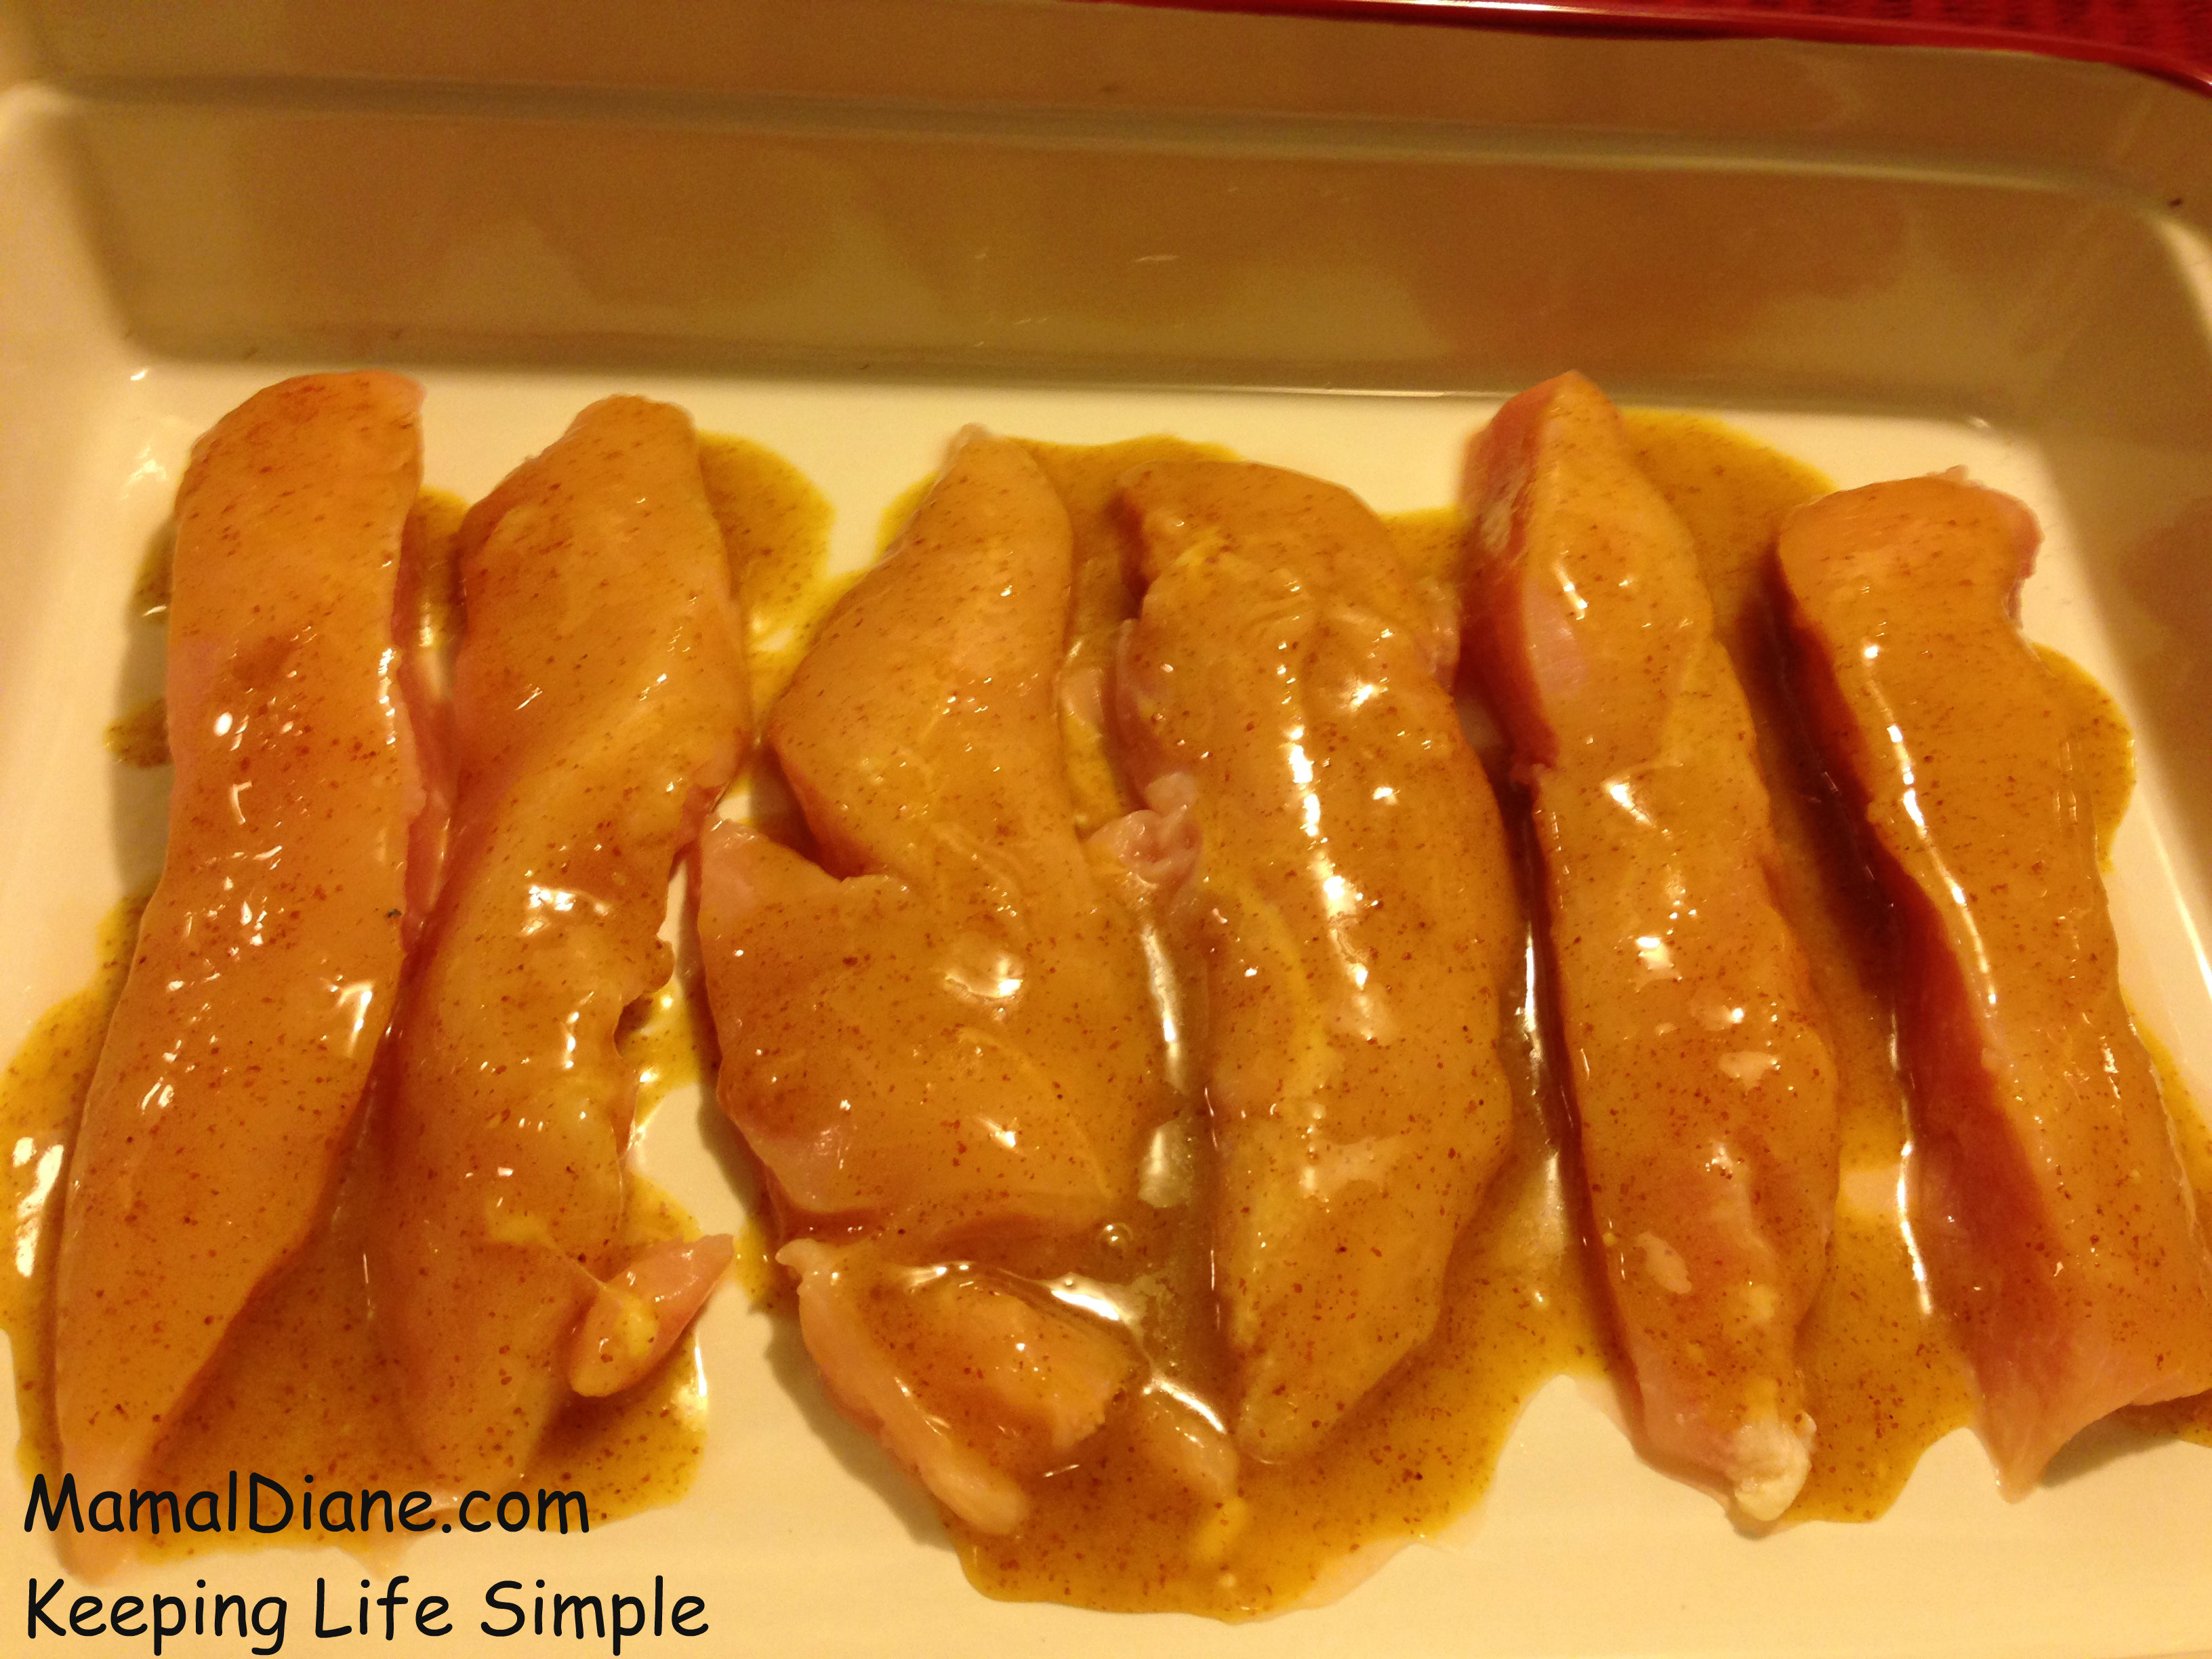 ... bacon slices and cut them in half. Place them on top of your chicken